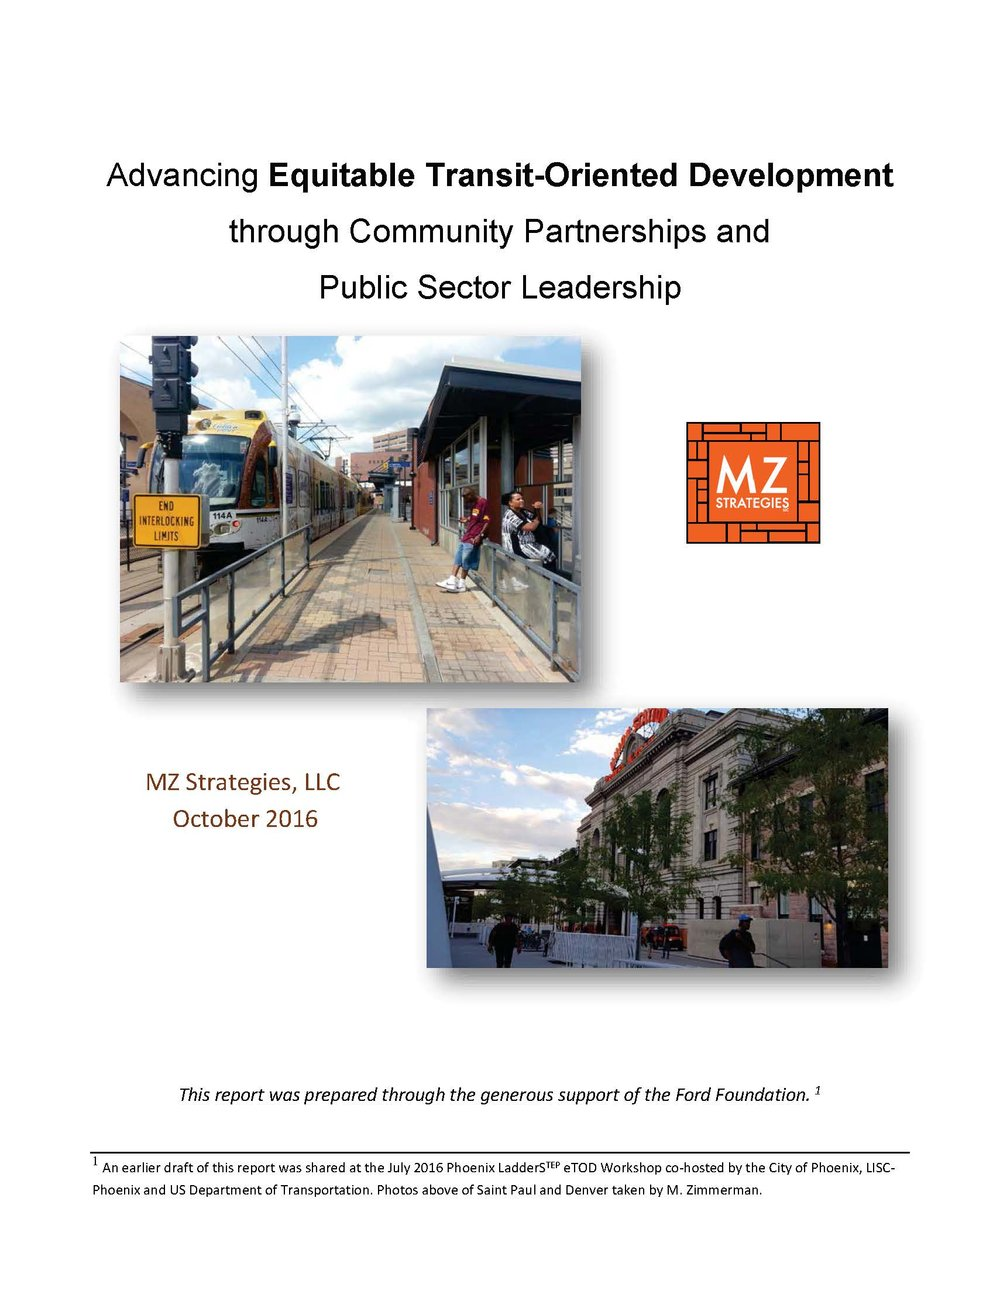 New Publication by MZ Strategies offers regional case studies, lessons learned and spotlights use of federal joint development program to support equitable TOD.